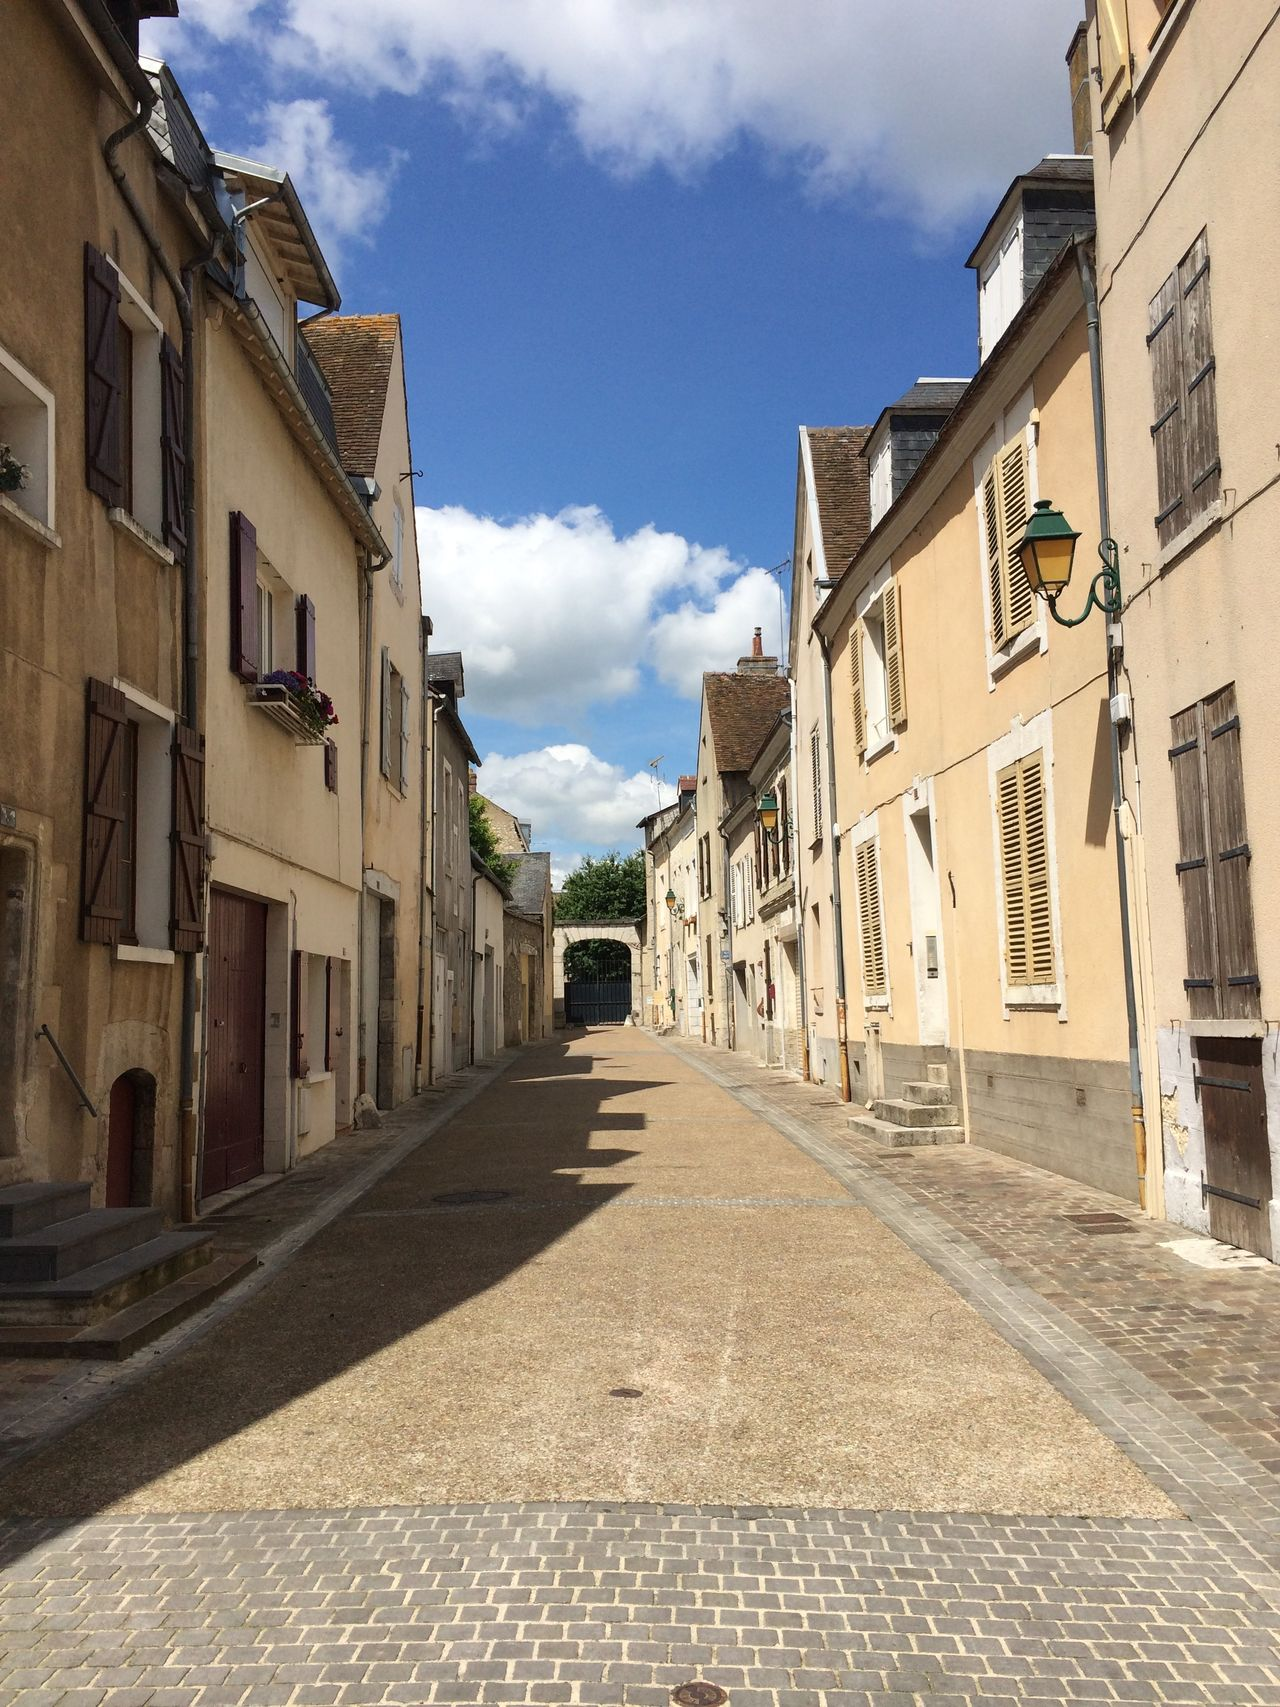 Architecture Building Building Exterior Built Structure City Cloud Cloud - Sky Cobblestone Diminishing Perspective Empty House Montargis Narrow Residential Building Residential Structure Road Sky Street The Way Forward Transportation Vanishing Point